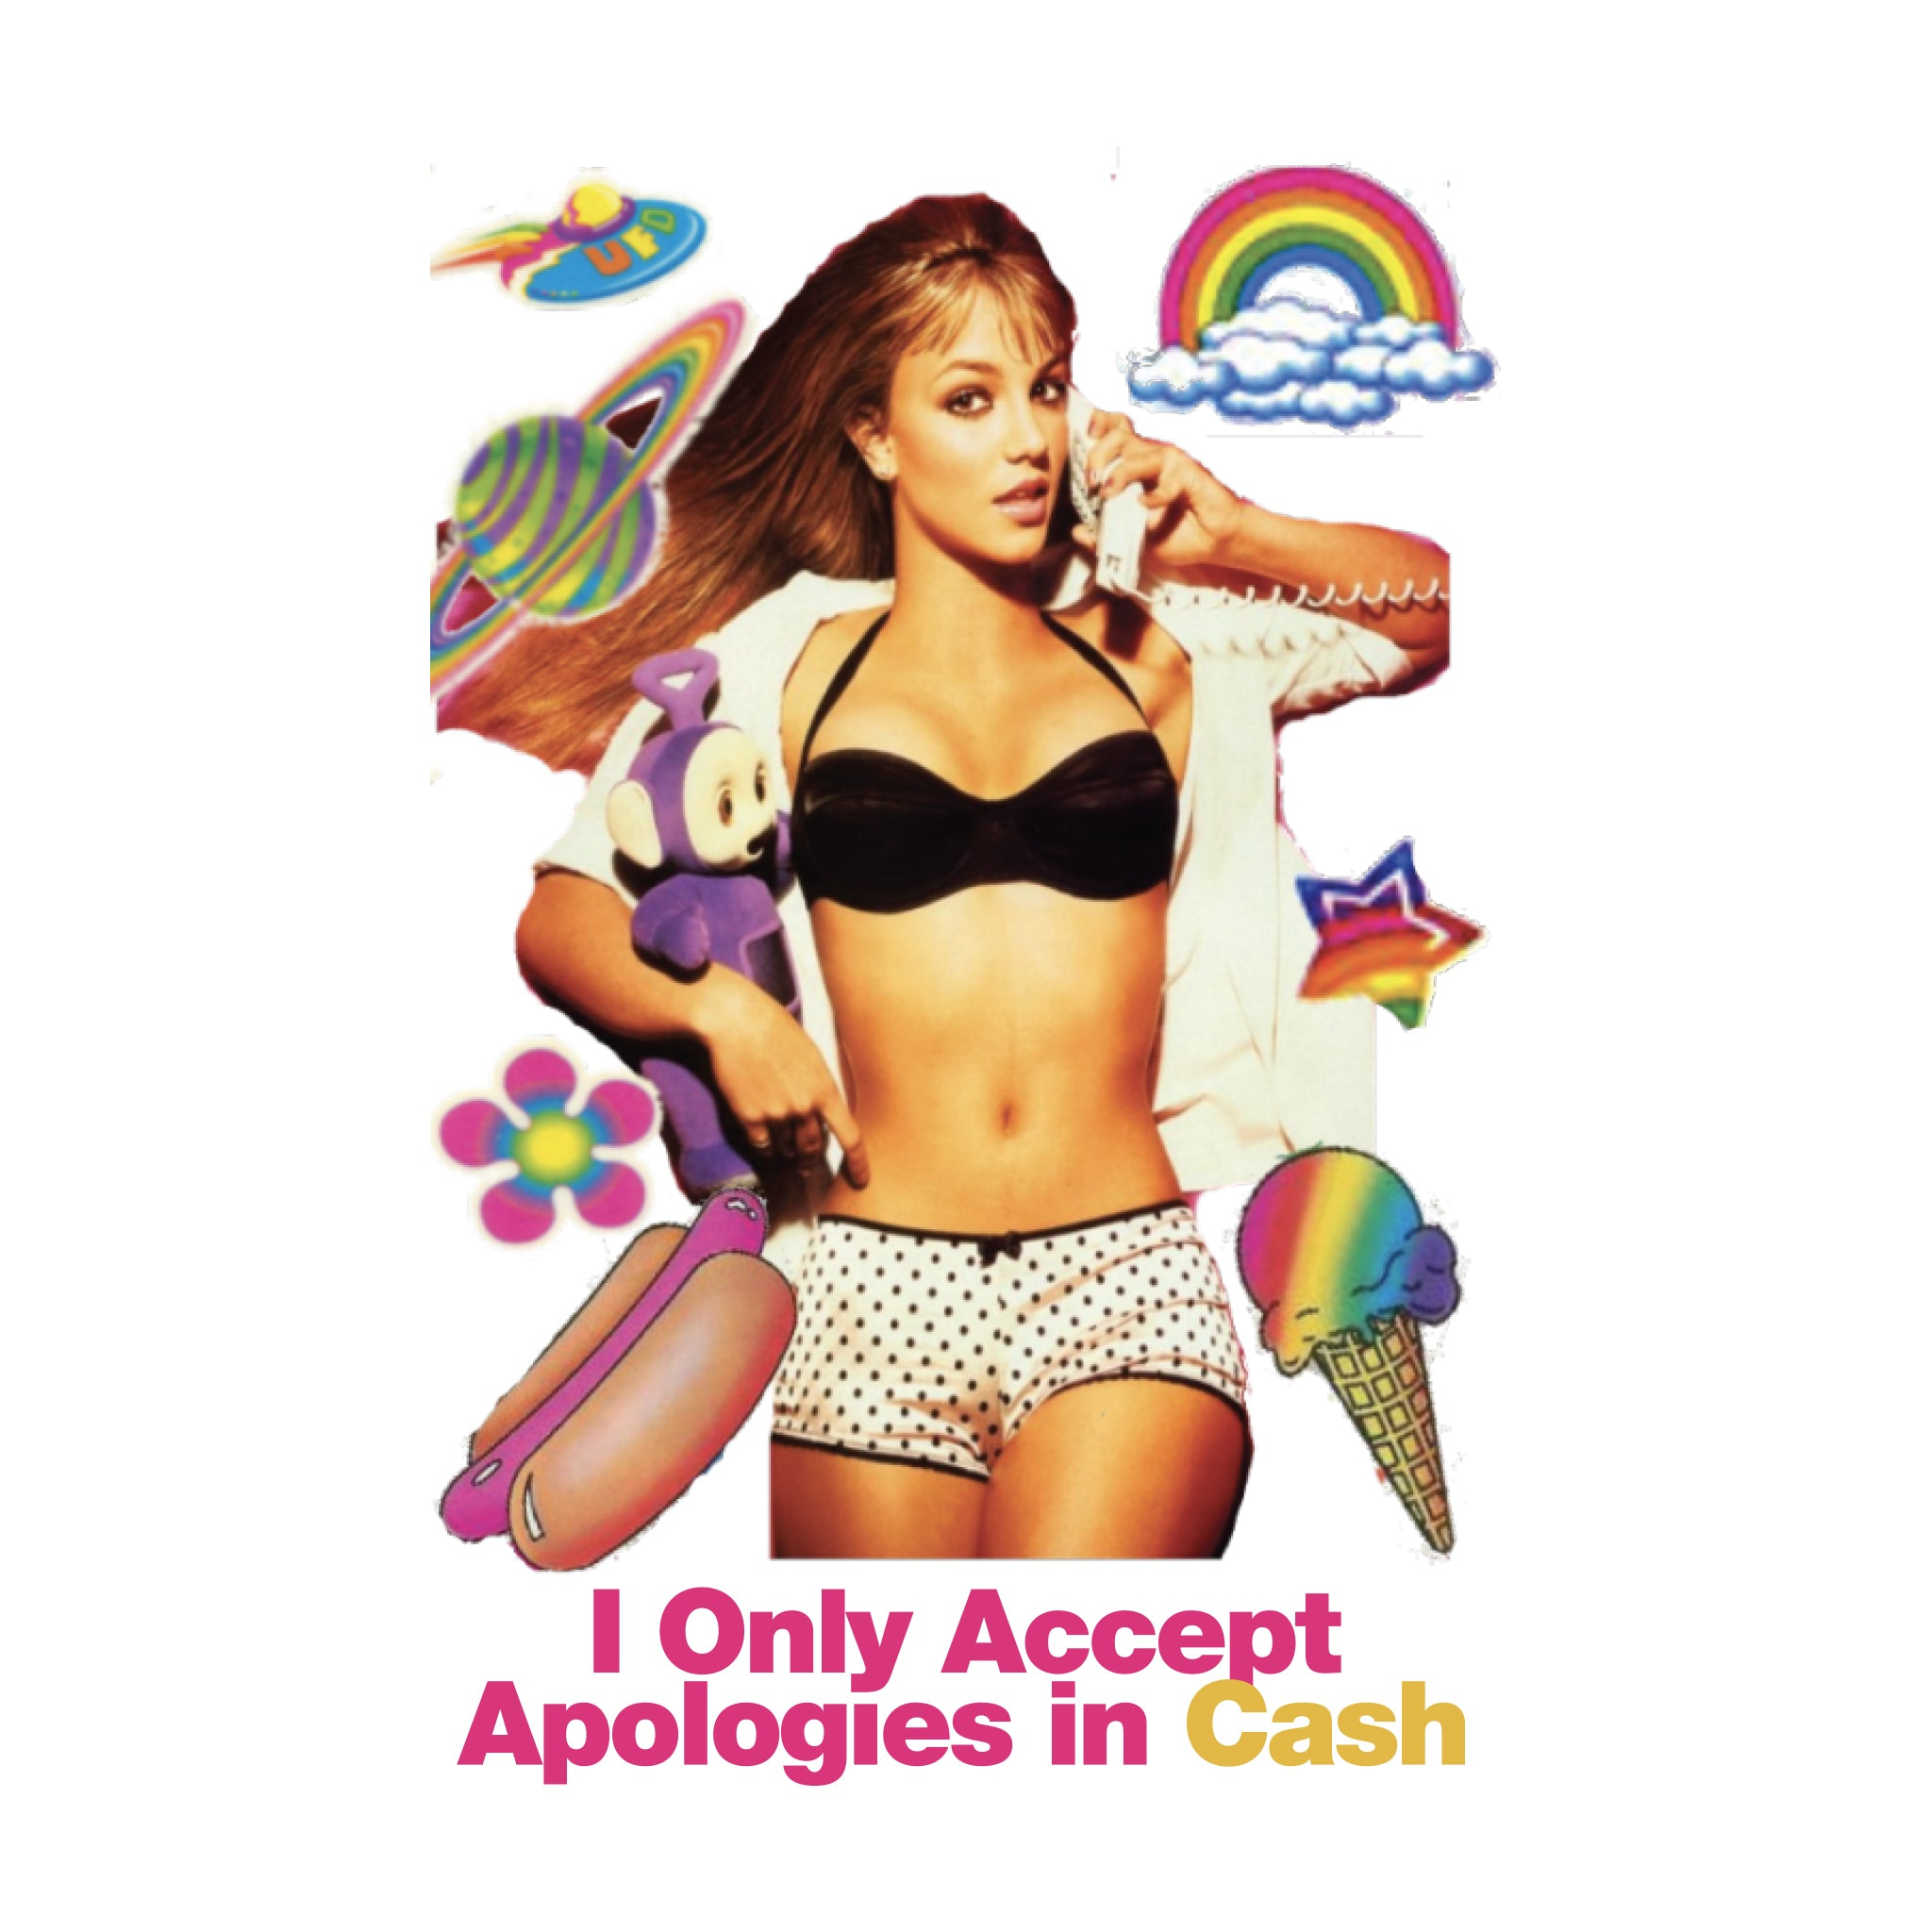 I only accept apologies in cash